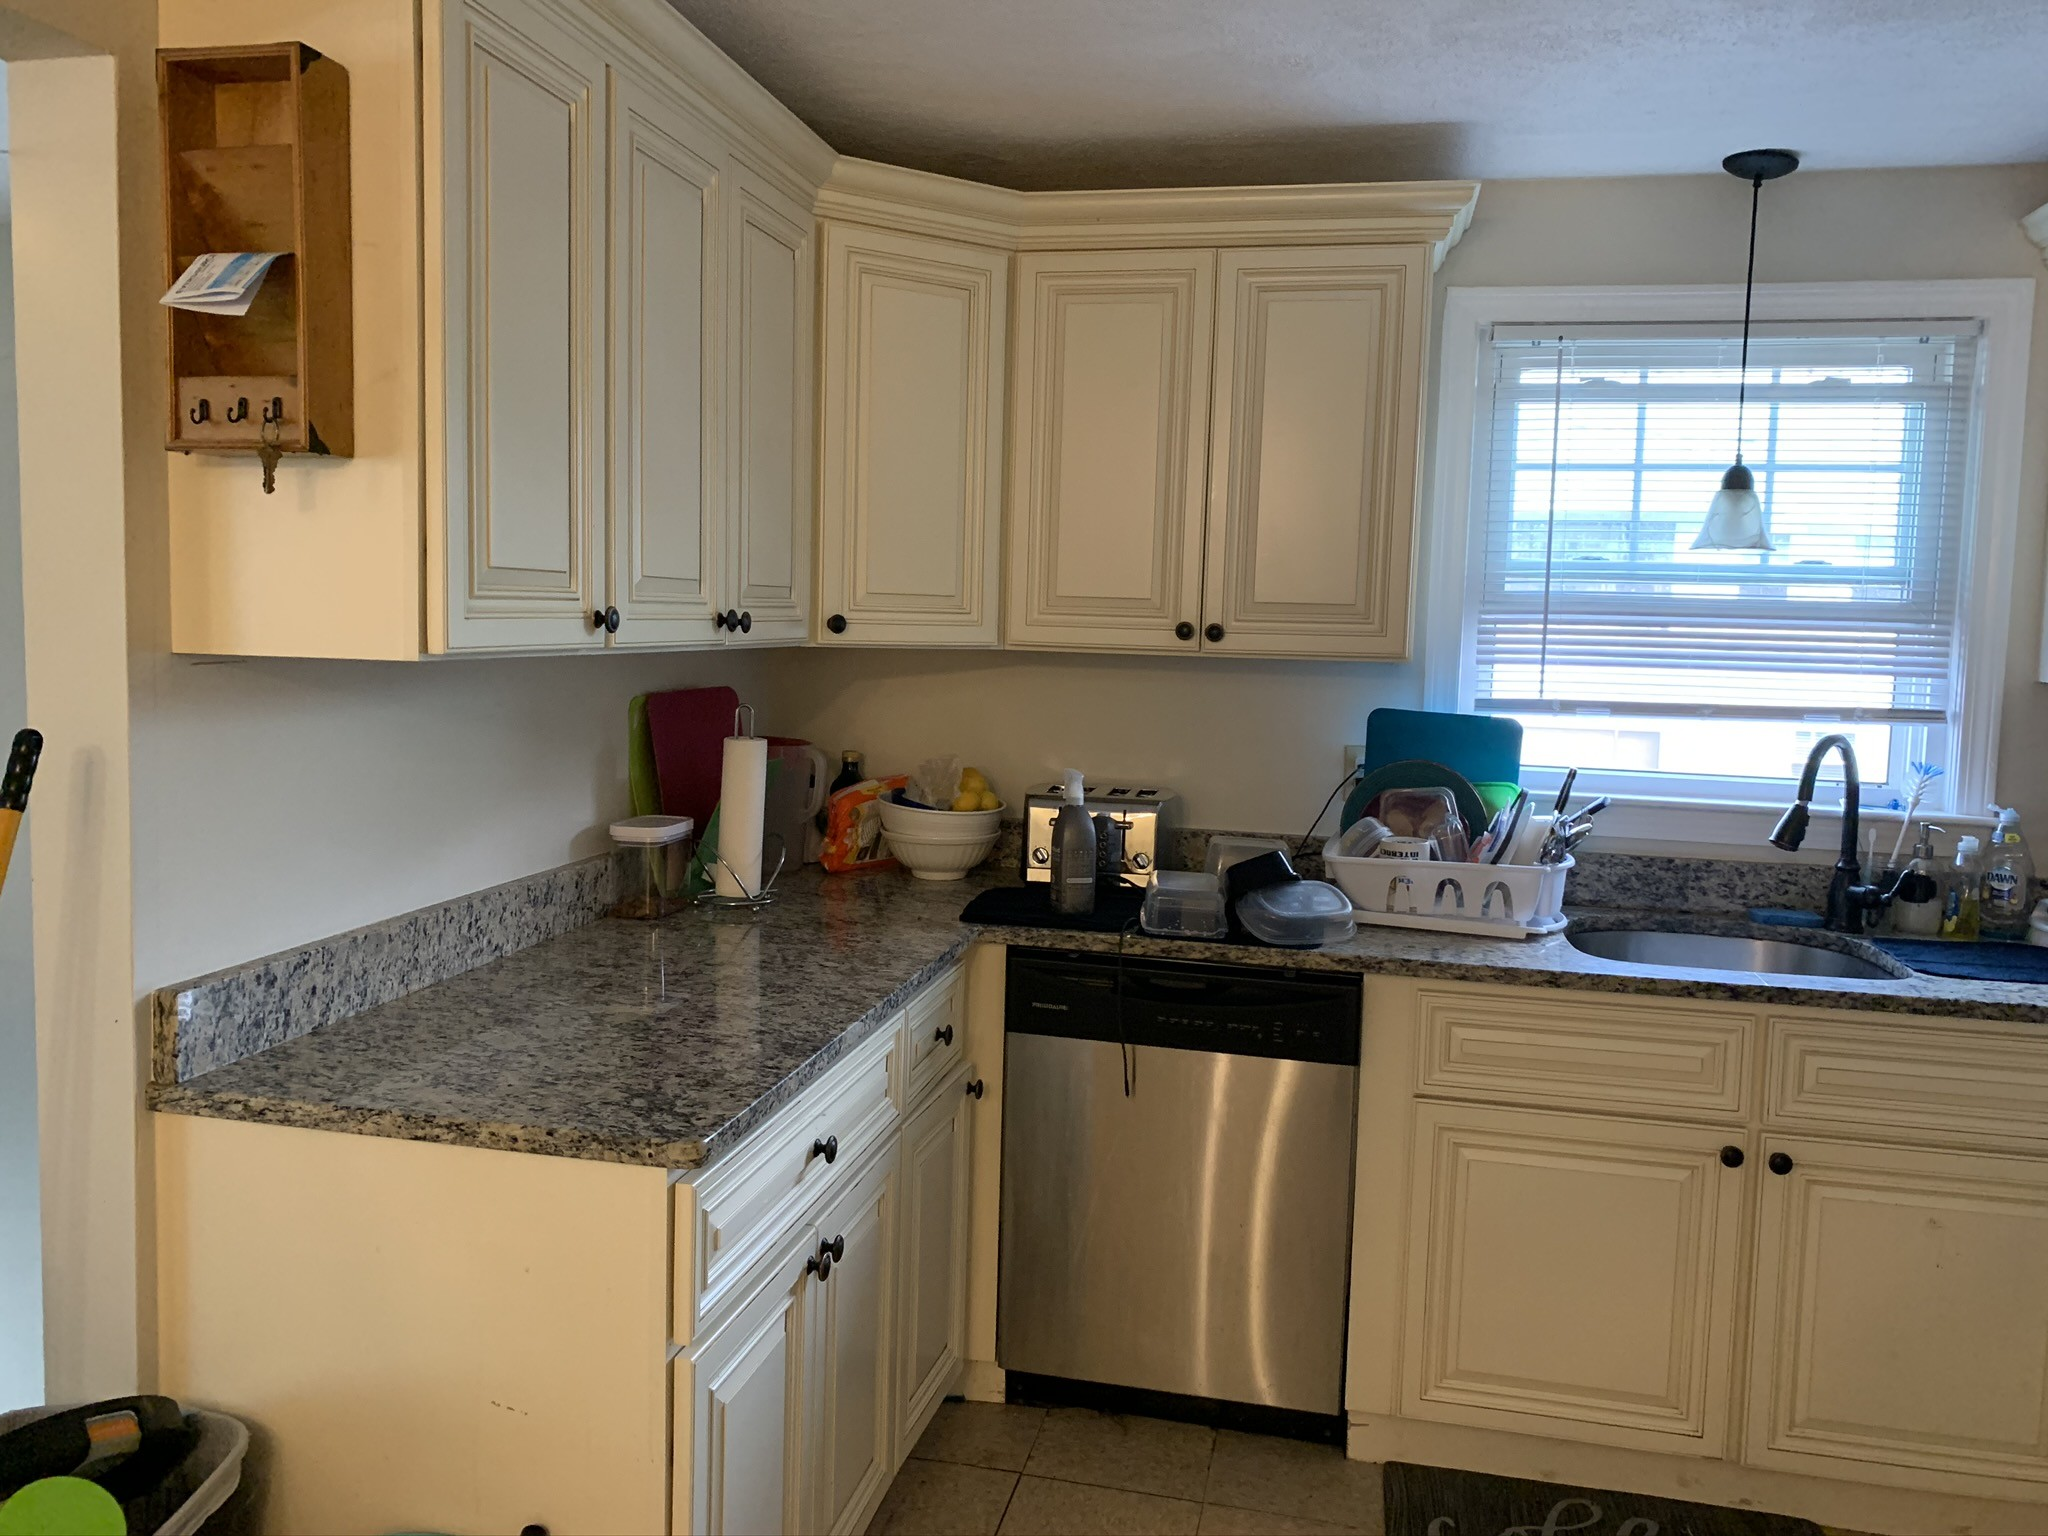 3 Beds, 1 Bath apartment in Waltham for $900